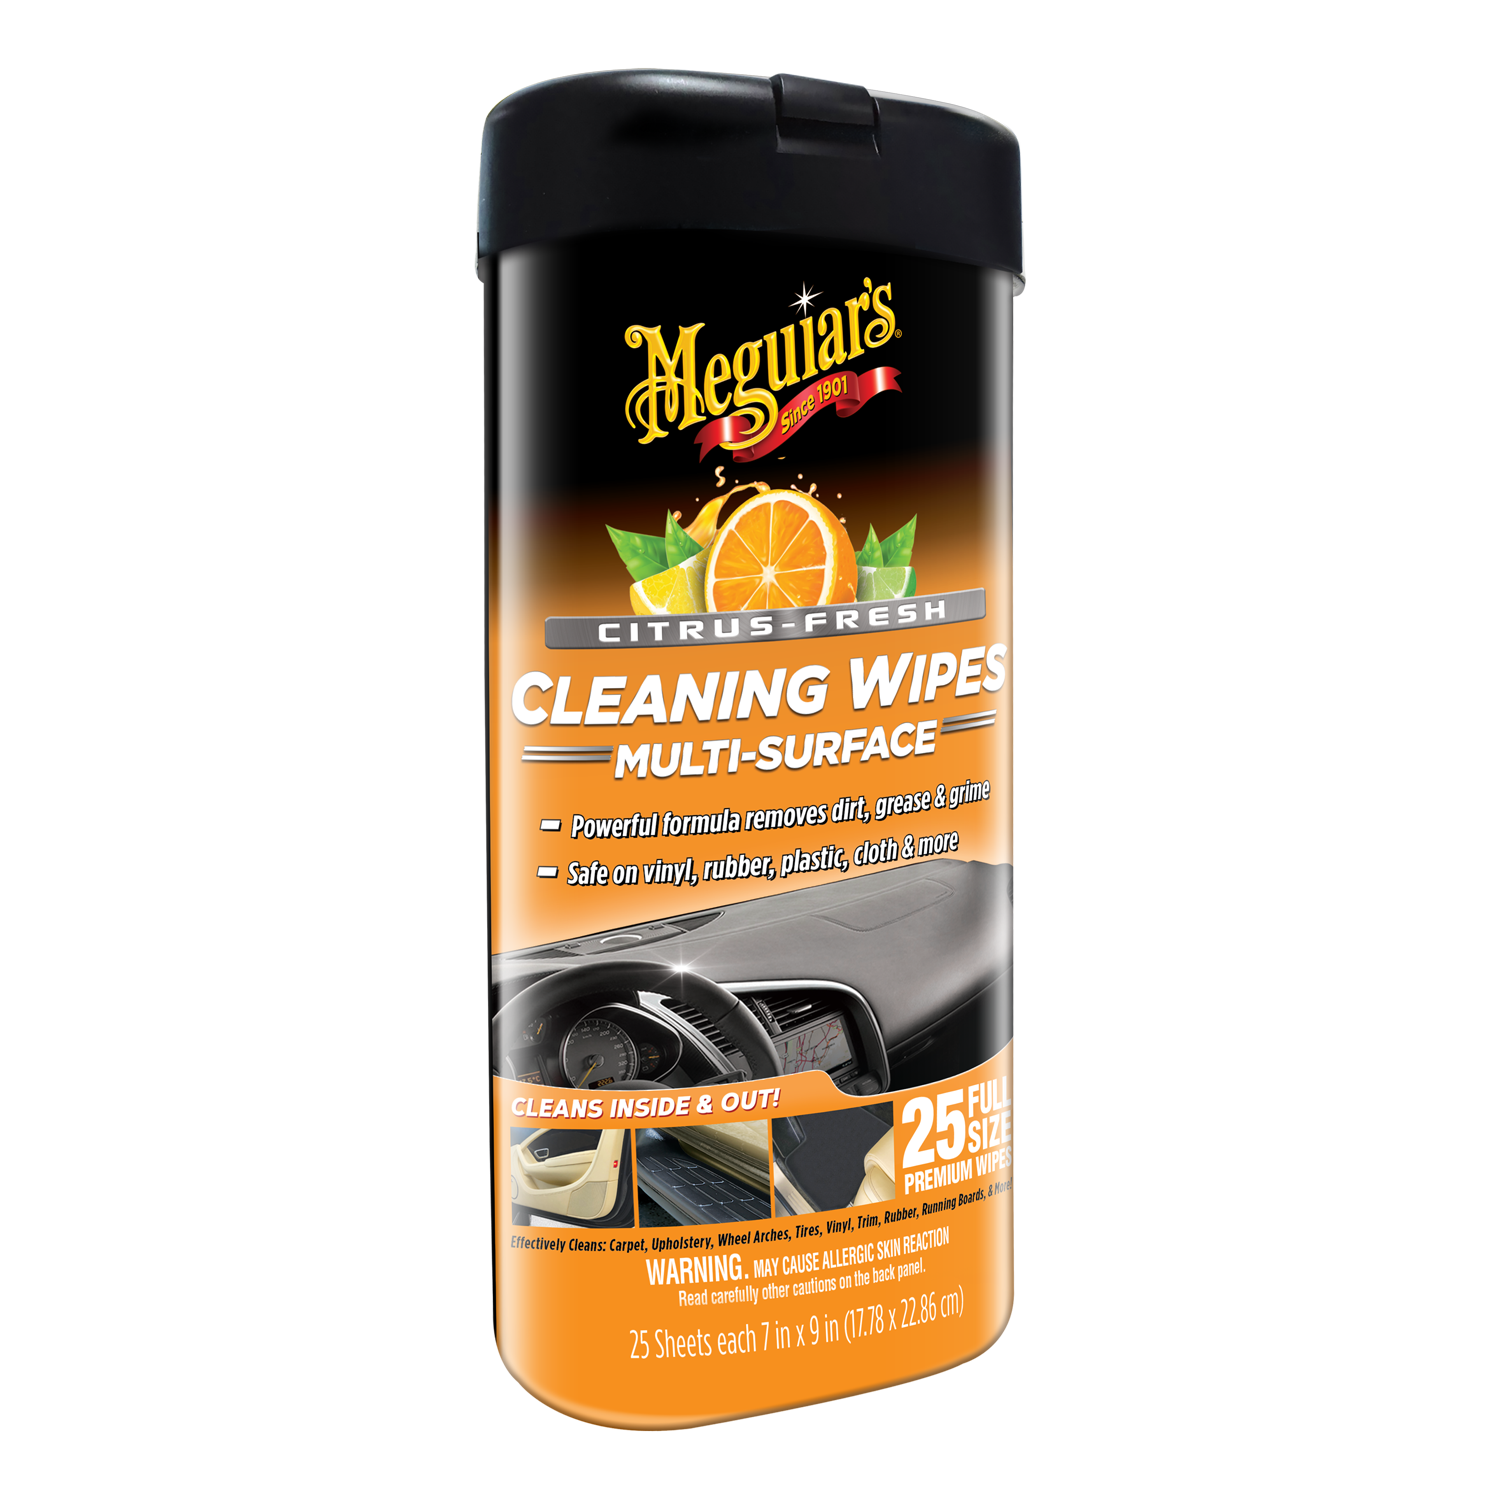 Meguiar's Citrus-Fresh Cleaning Wipes – Interior & Exterior Car Cleaning Wipes - G190600, 25 Wipes